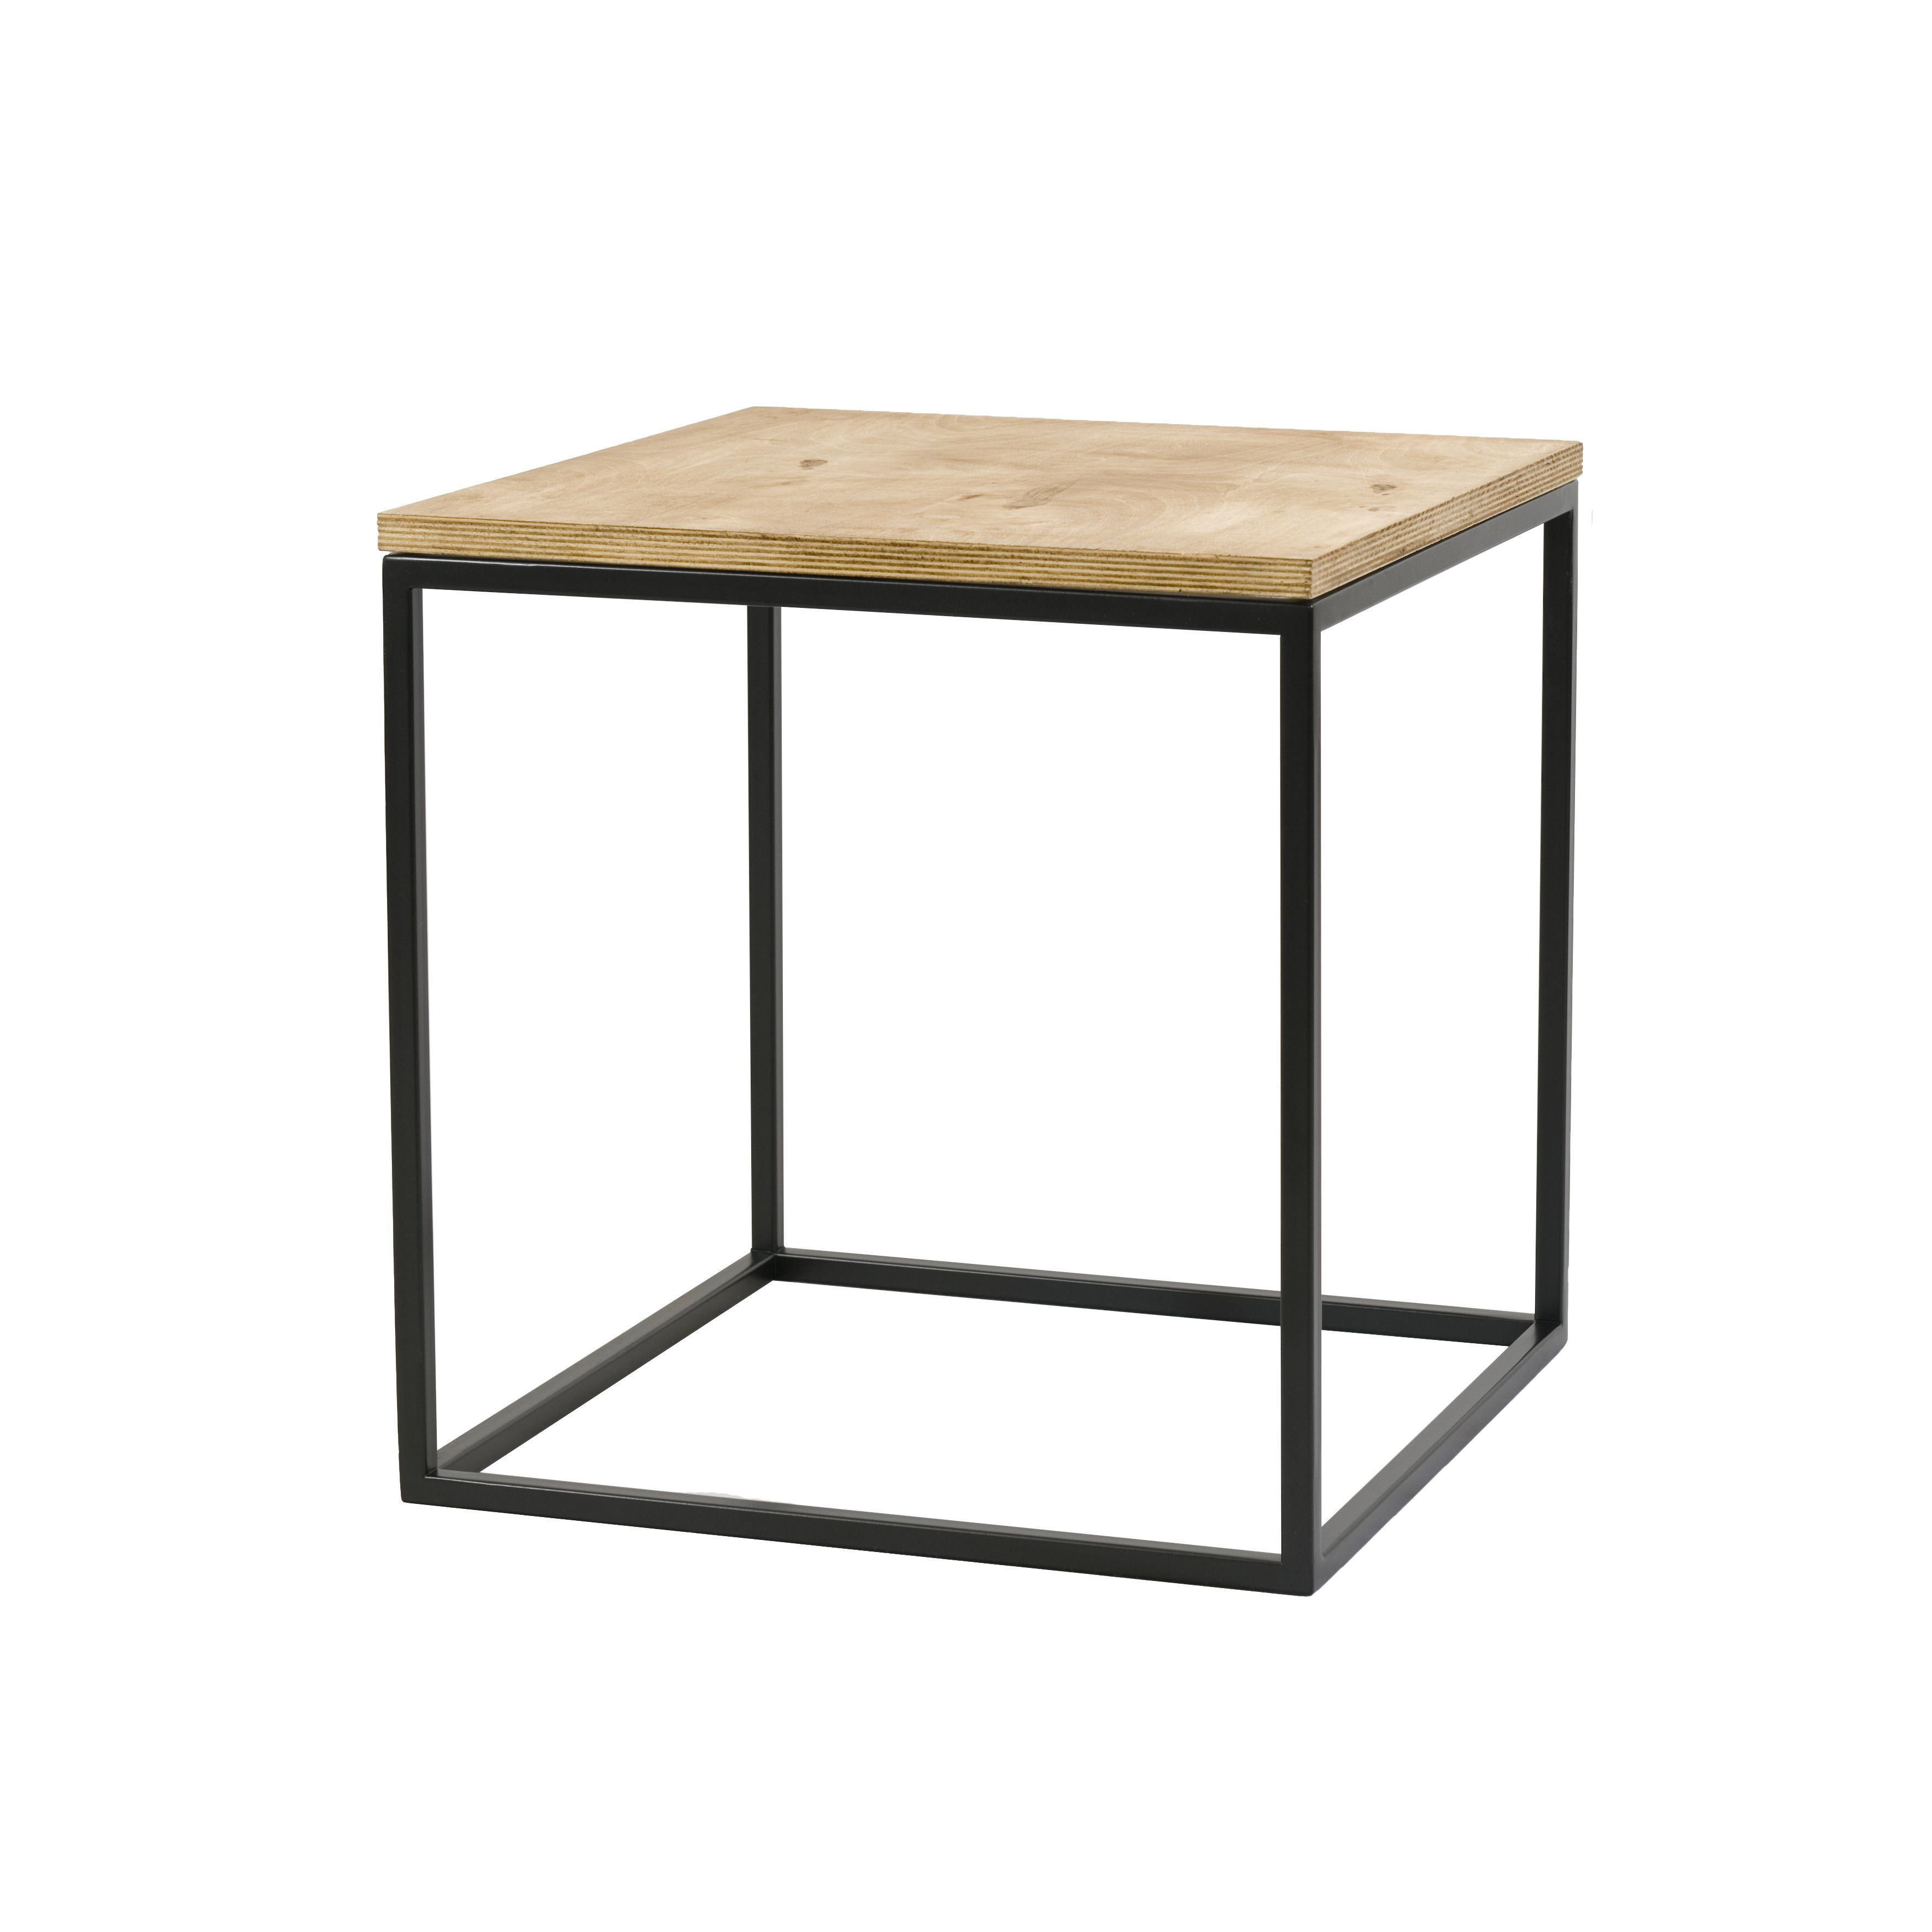 Charming Castleton Home Side Table £149